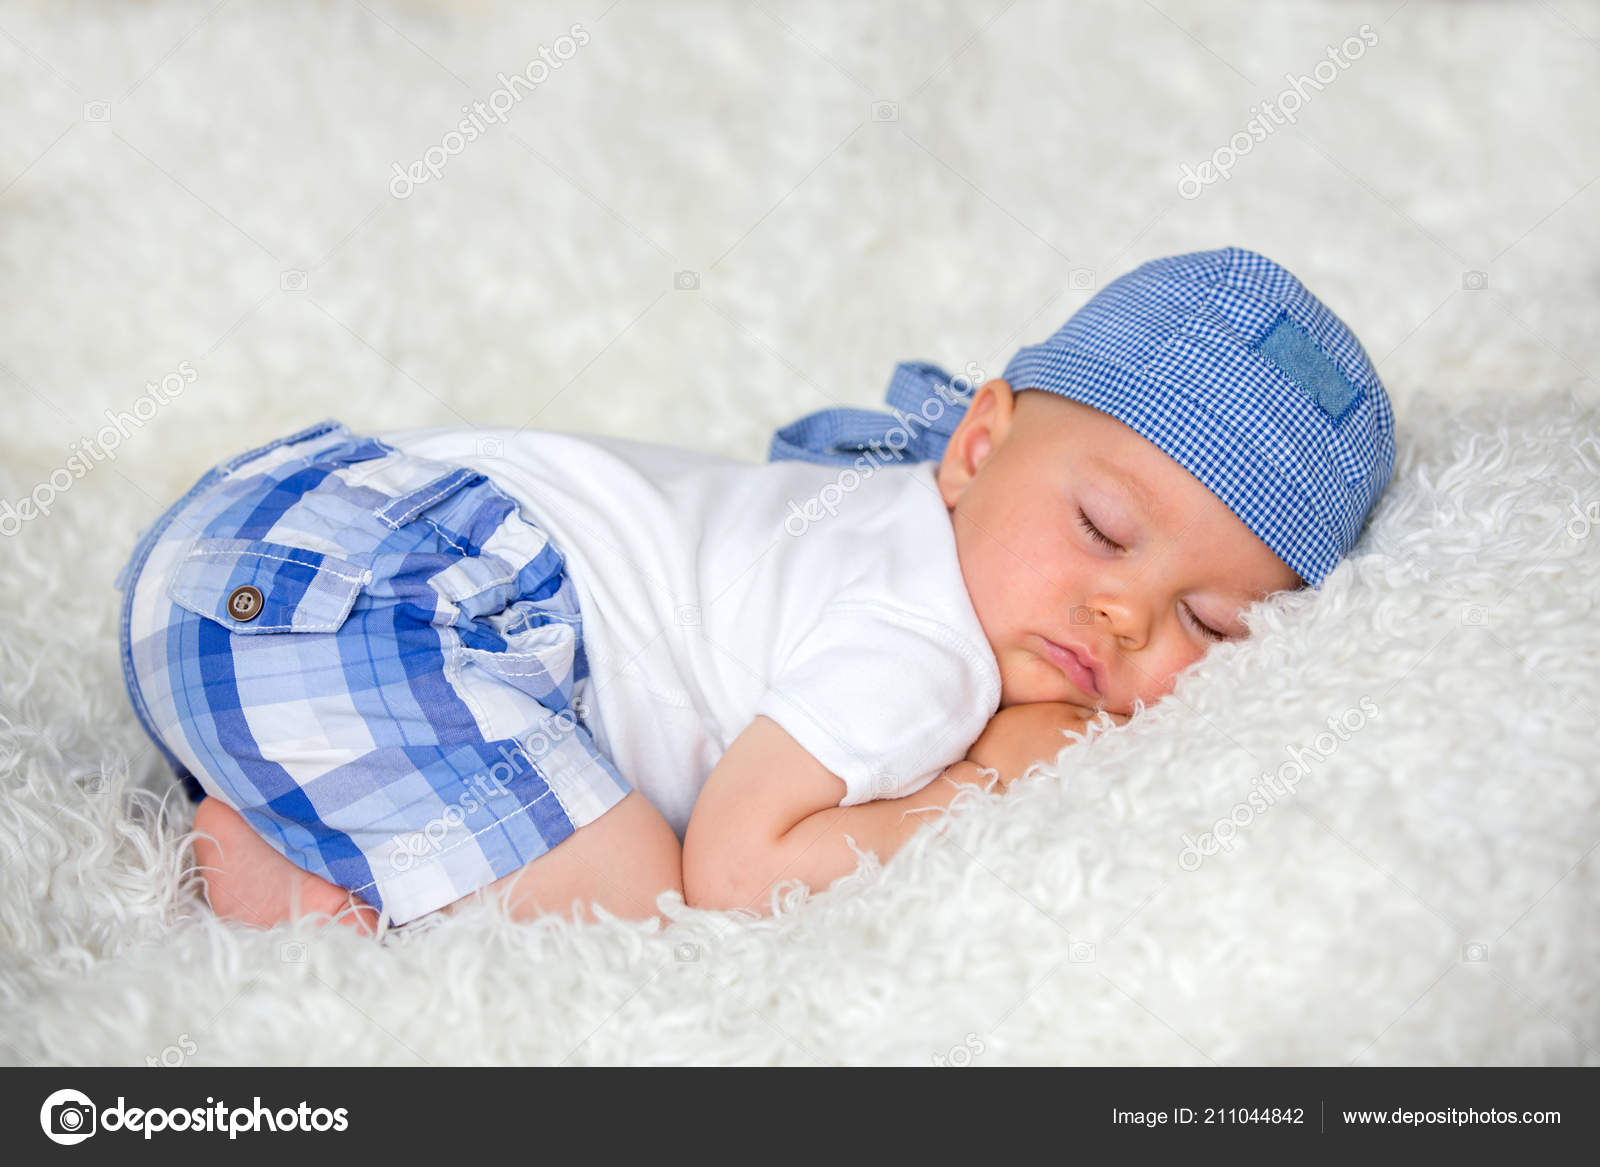 557f8d28d8c Cute Baby Boy Sleeping Bed Hat Home — Stock Photo © t.tomsickova ...